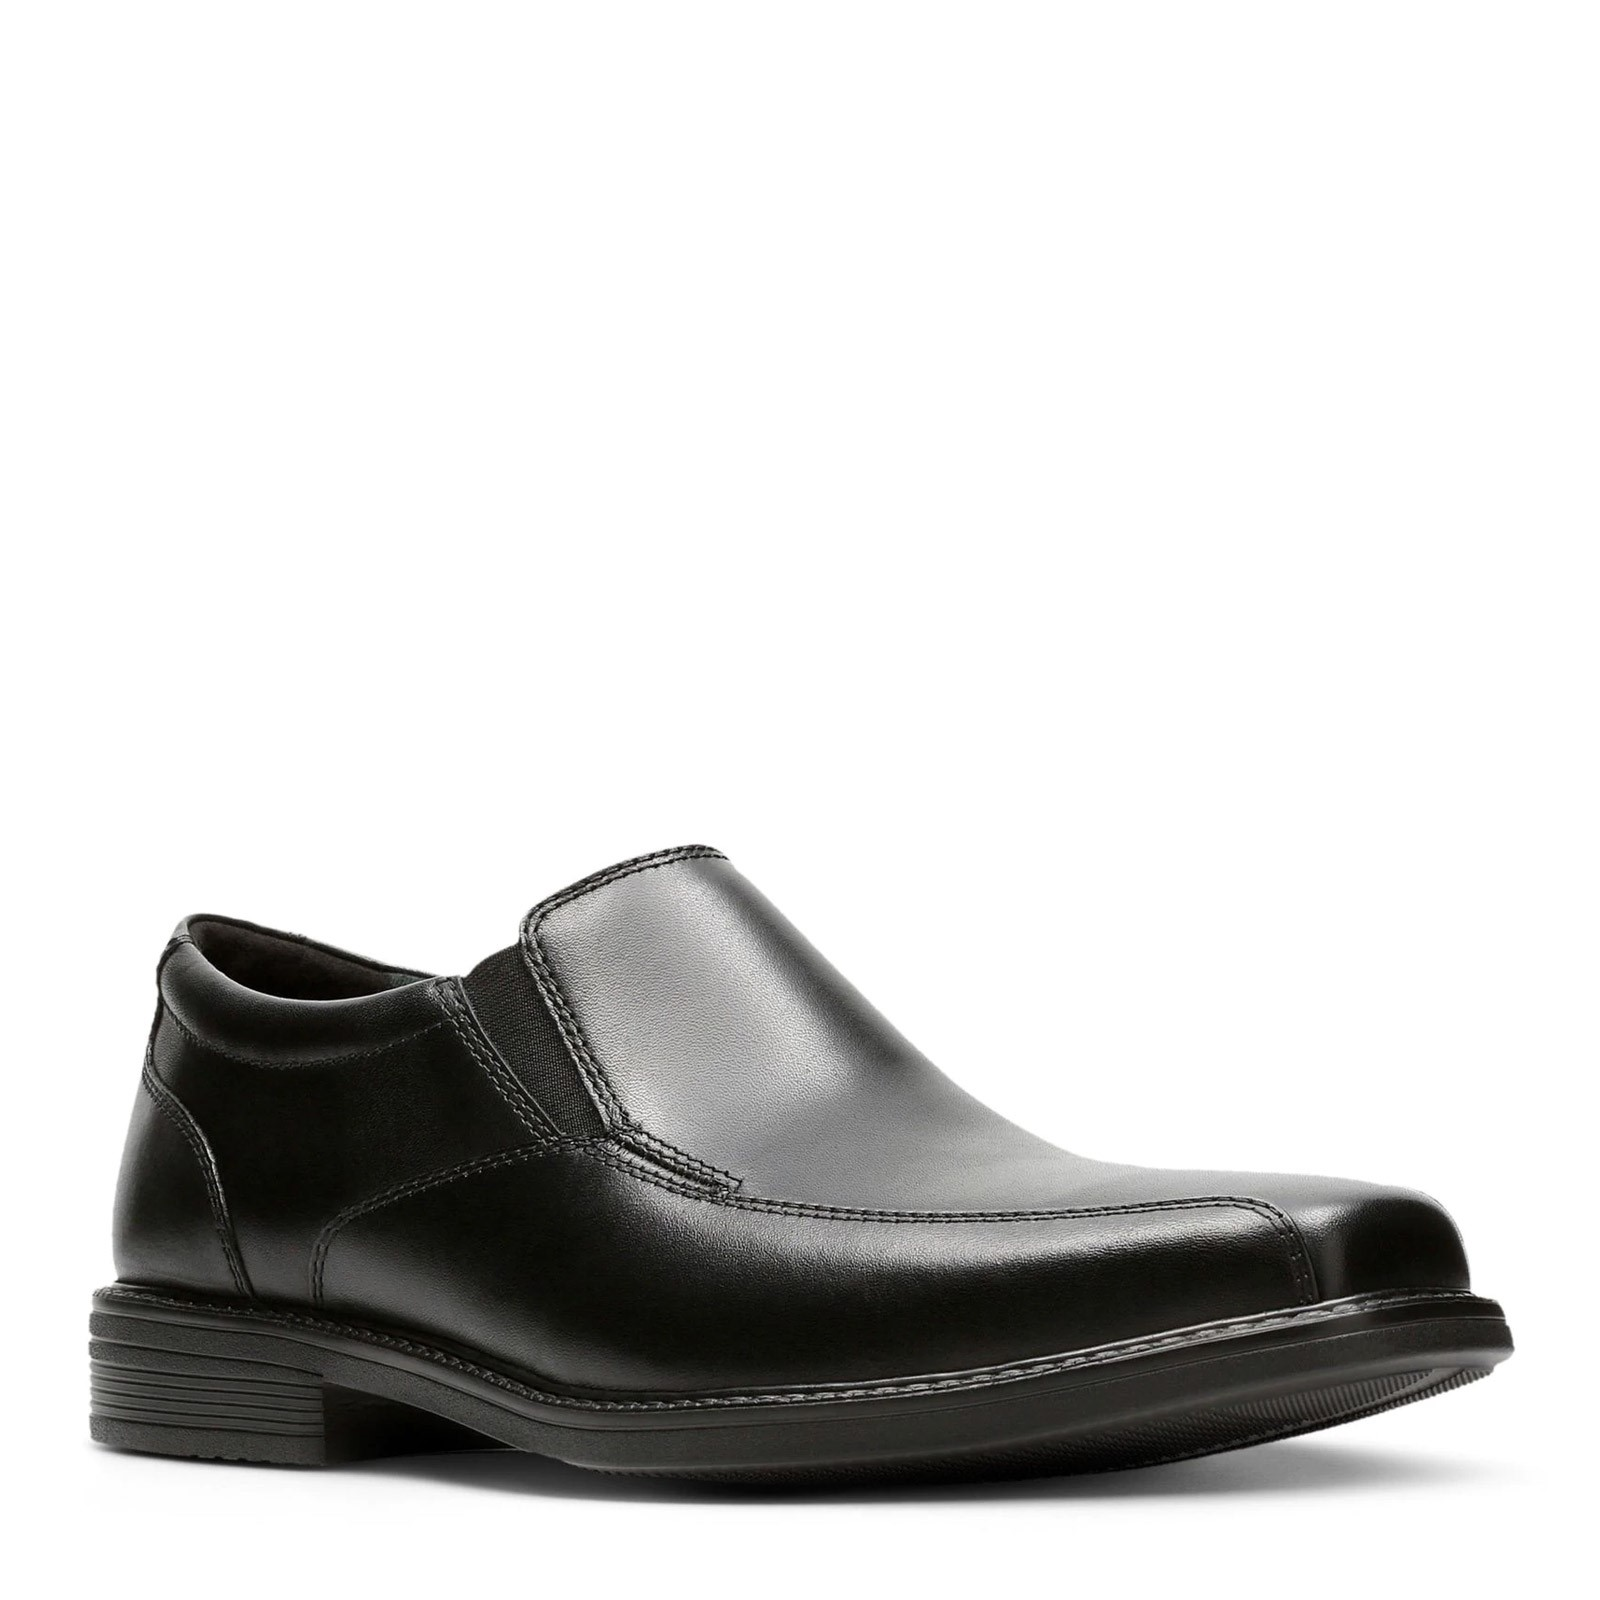 Men's Bostonian, Bolton Free Loafer